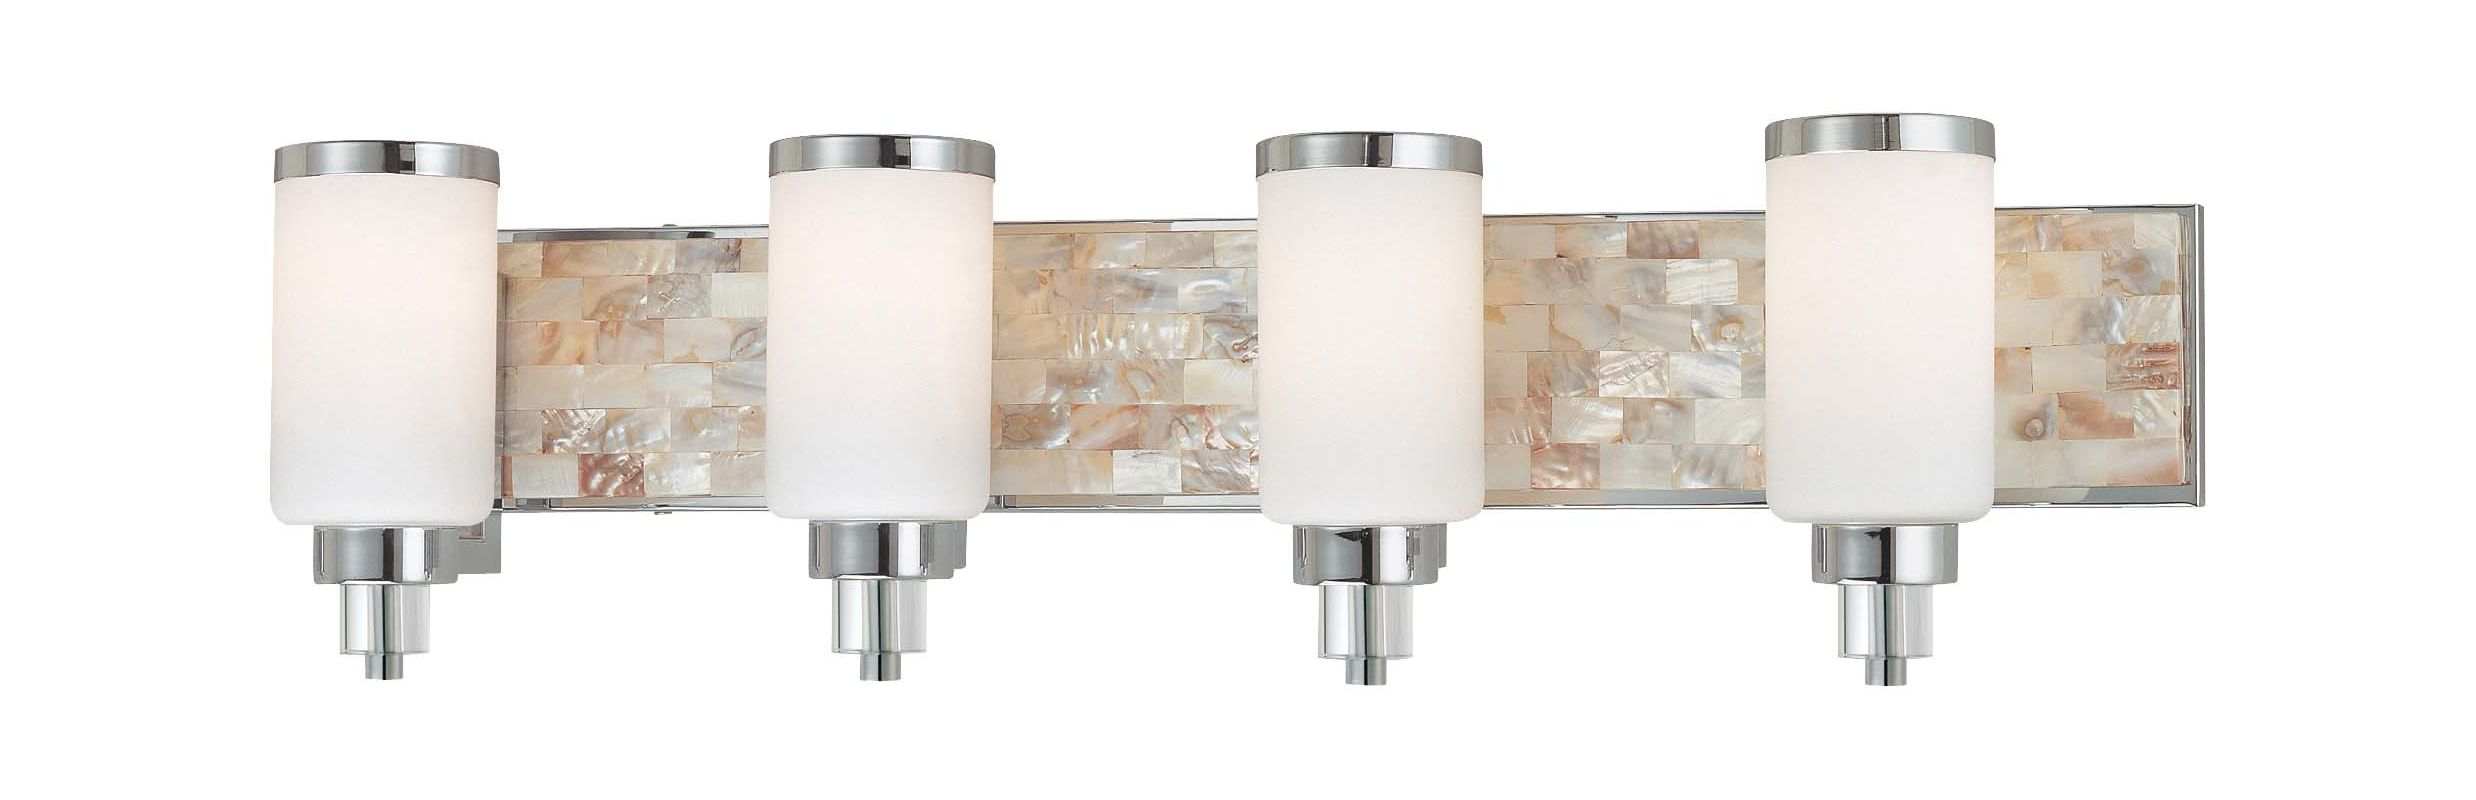 Minka Lavery 3244 4 Light 34&quote Width Bathroom Vanity Light Chrome with